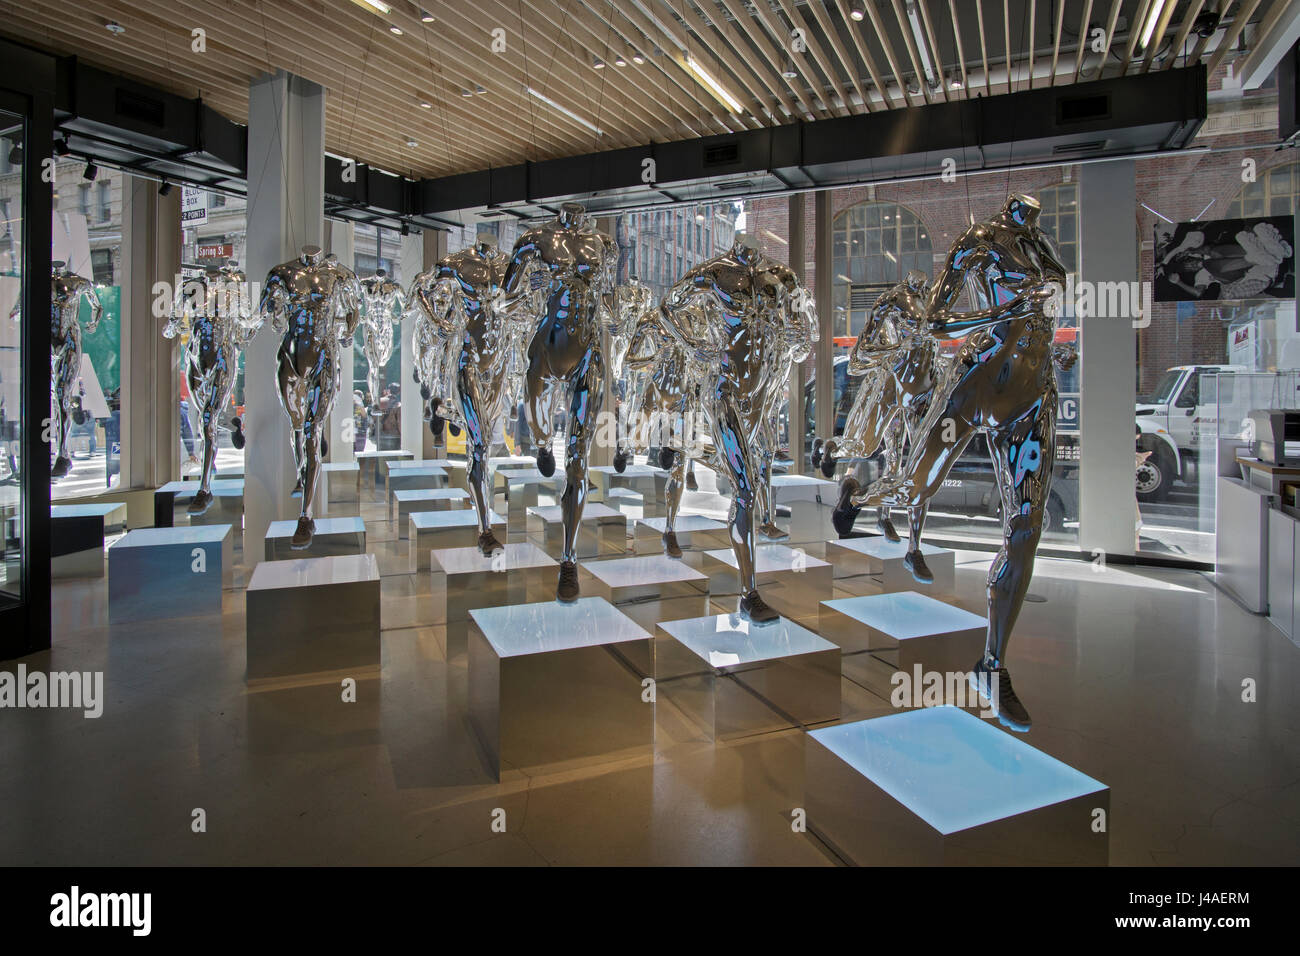 Chrome colored sculptures of headless runners at the Nike Store on Broadway & Spring Street in the Soho section - Stock Image